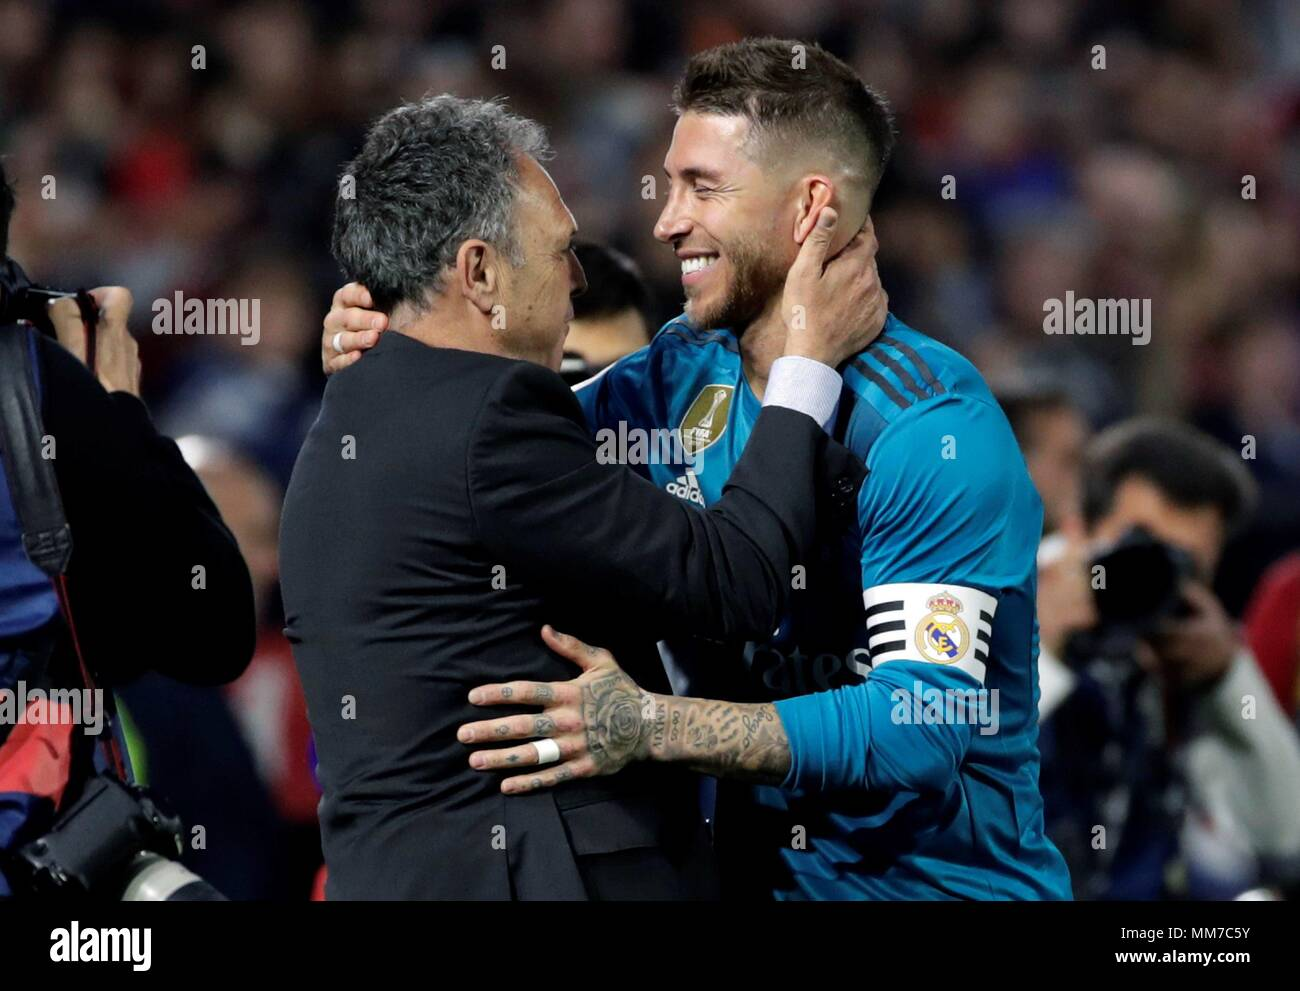 Sevillas coach joaquin caparros and real madrids captain sergio sevillas coach joaquin caparros and real madrids captain sergio ramos greet each other during the spanish first division league match between sevilla and m4hsunfo